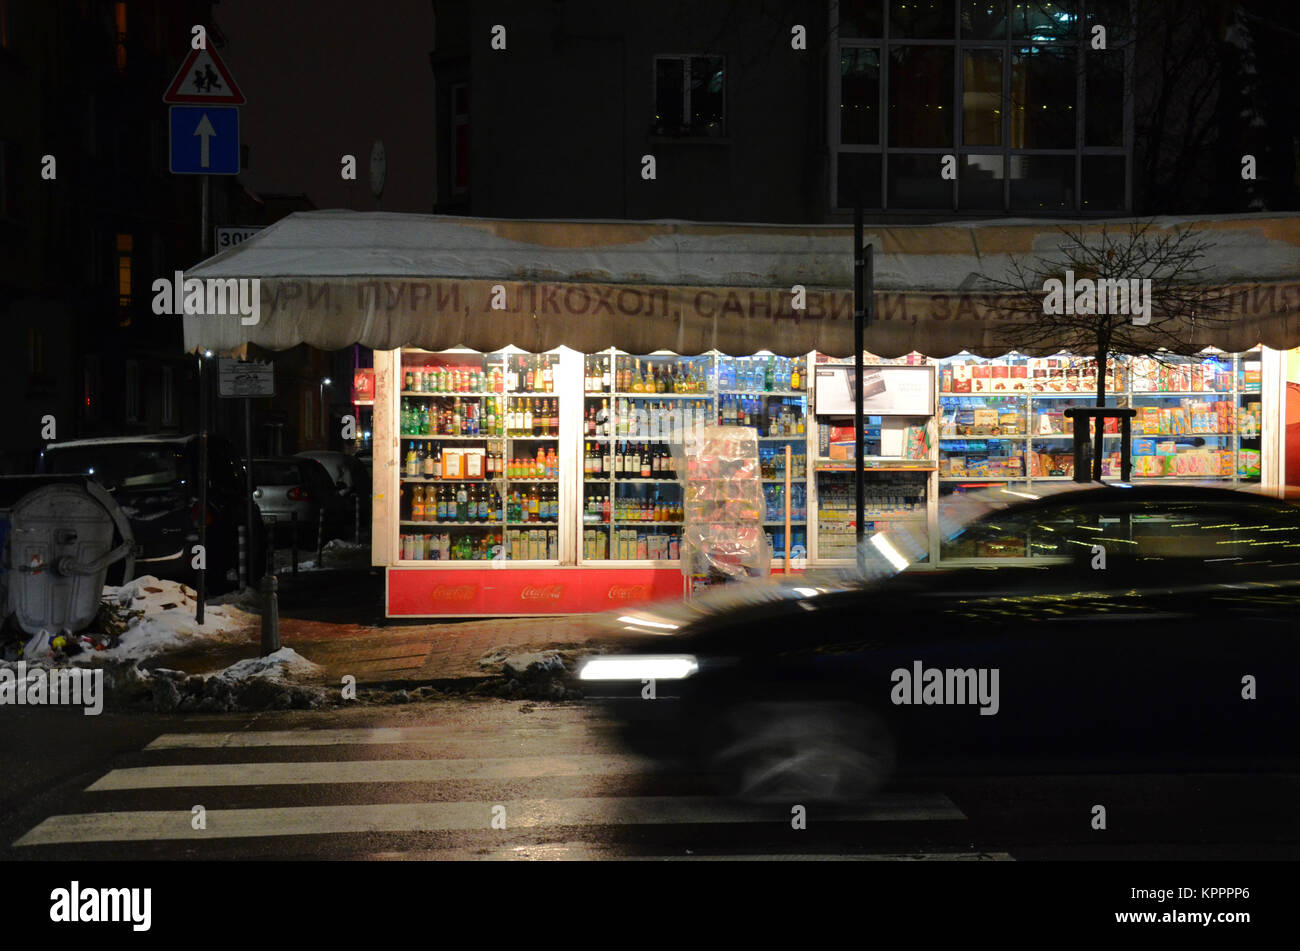 A kiosk next to a road at nighttime in Sofia, Bulgaria, eastern Europe - Stock Image